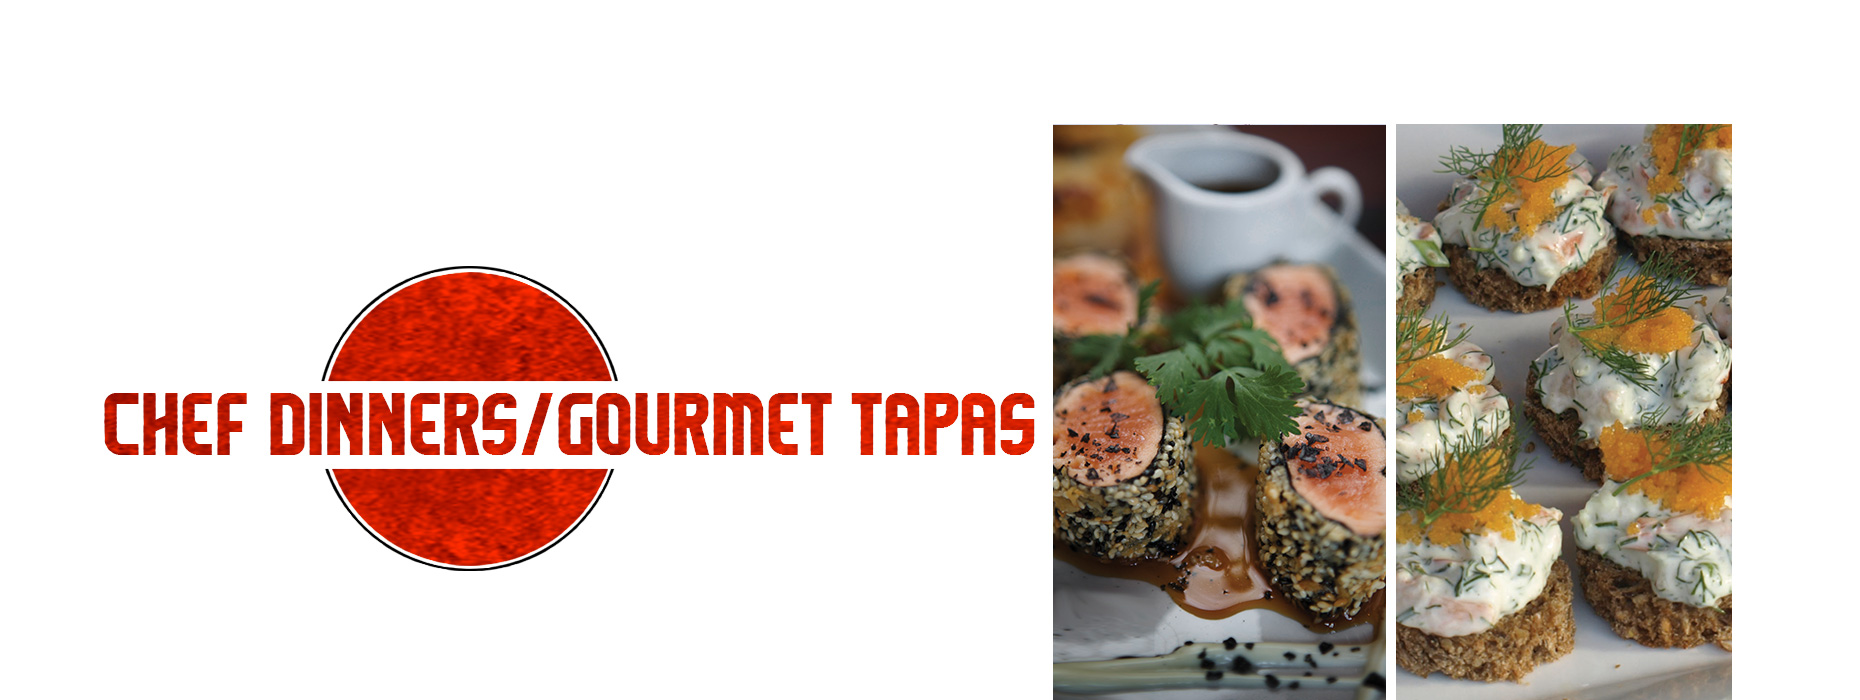 Chef Dinners & Gourmet Tapas